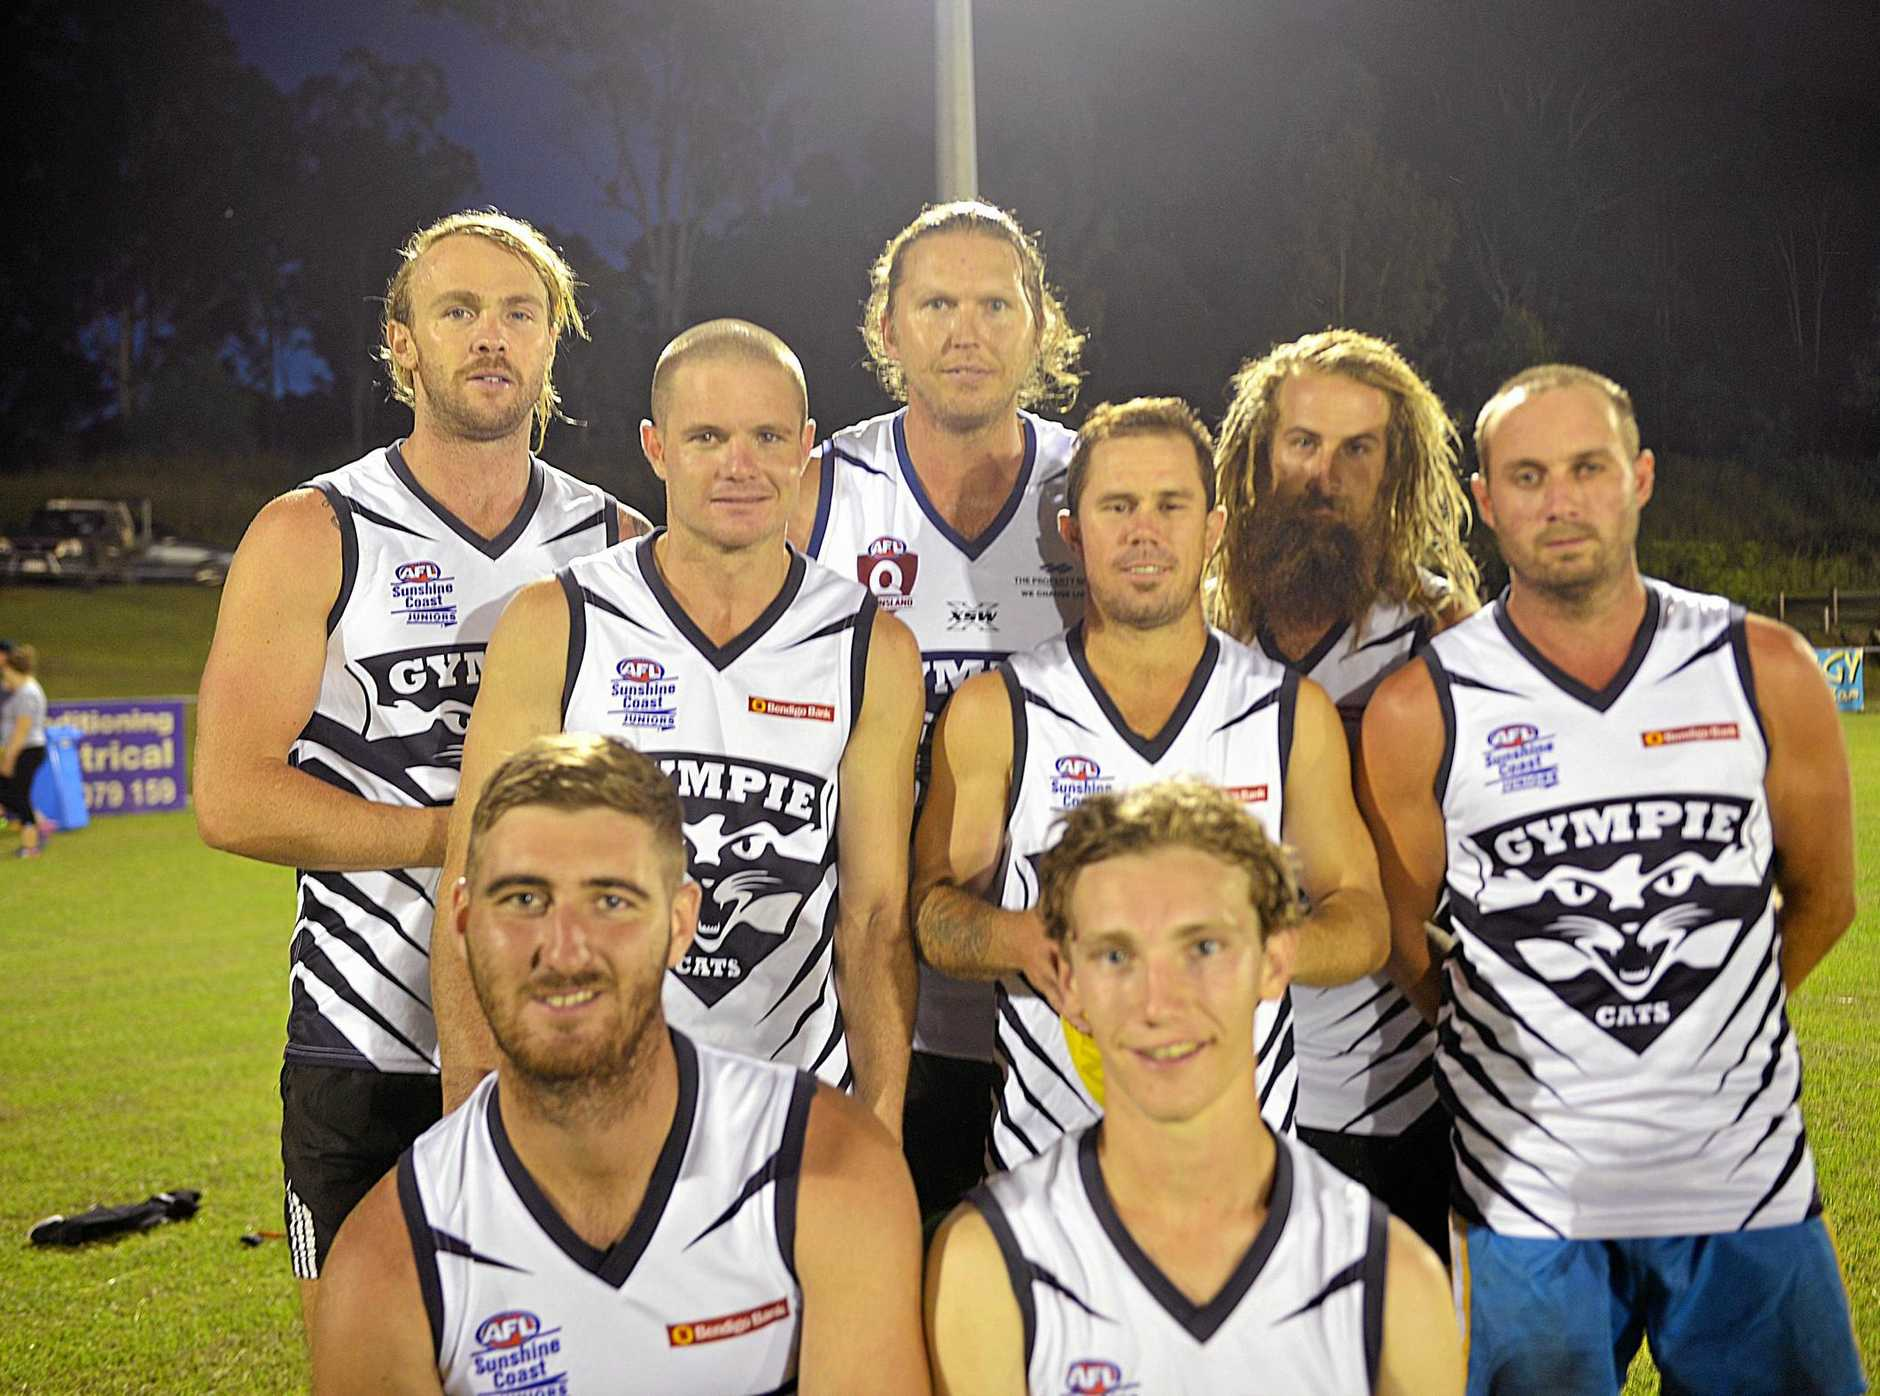 BIG PICTURE: Gympie Cats (back from left) Hayden Graham, Tim Ellingsen, Courtney Findlay, Scott Stiefier, Lanze Magin, Beau Ridgway, (front) Jesse Lawrence and Jack Cross are focused on the future of the club.